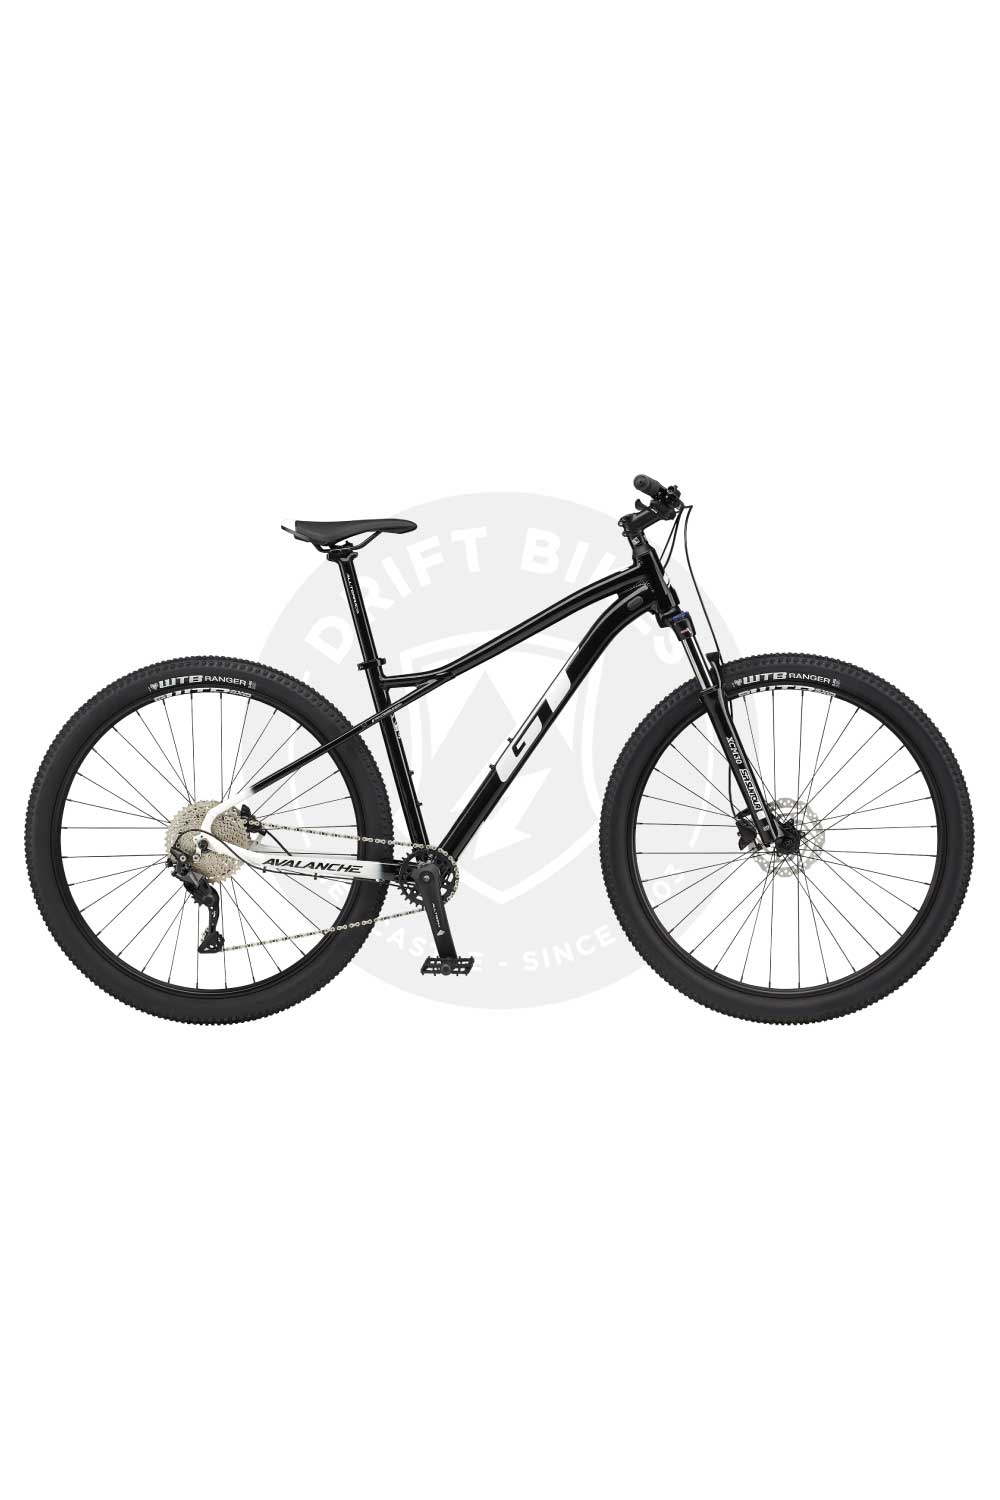 GT Bicycles 2021 Avalanche Comp Mountain Bike